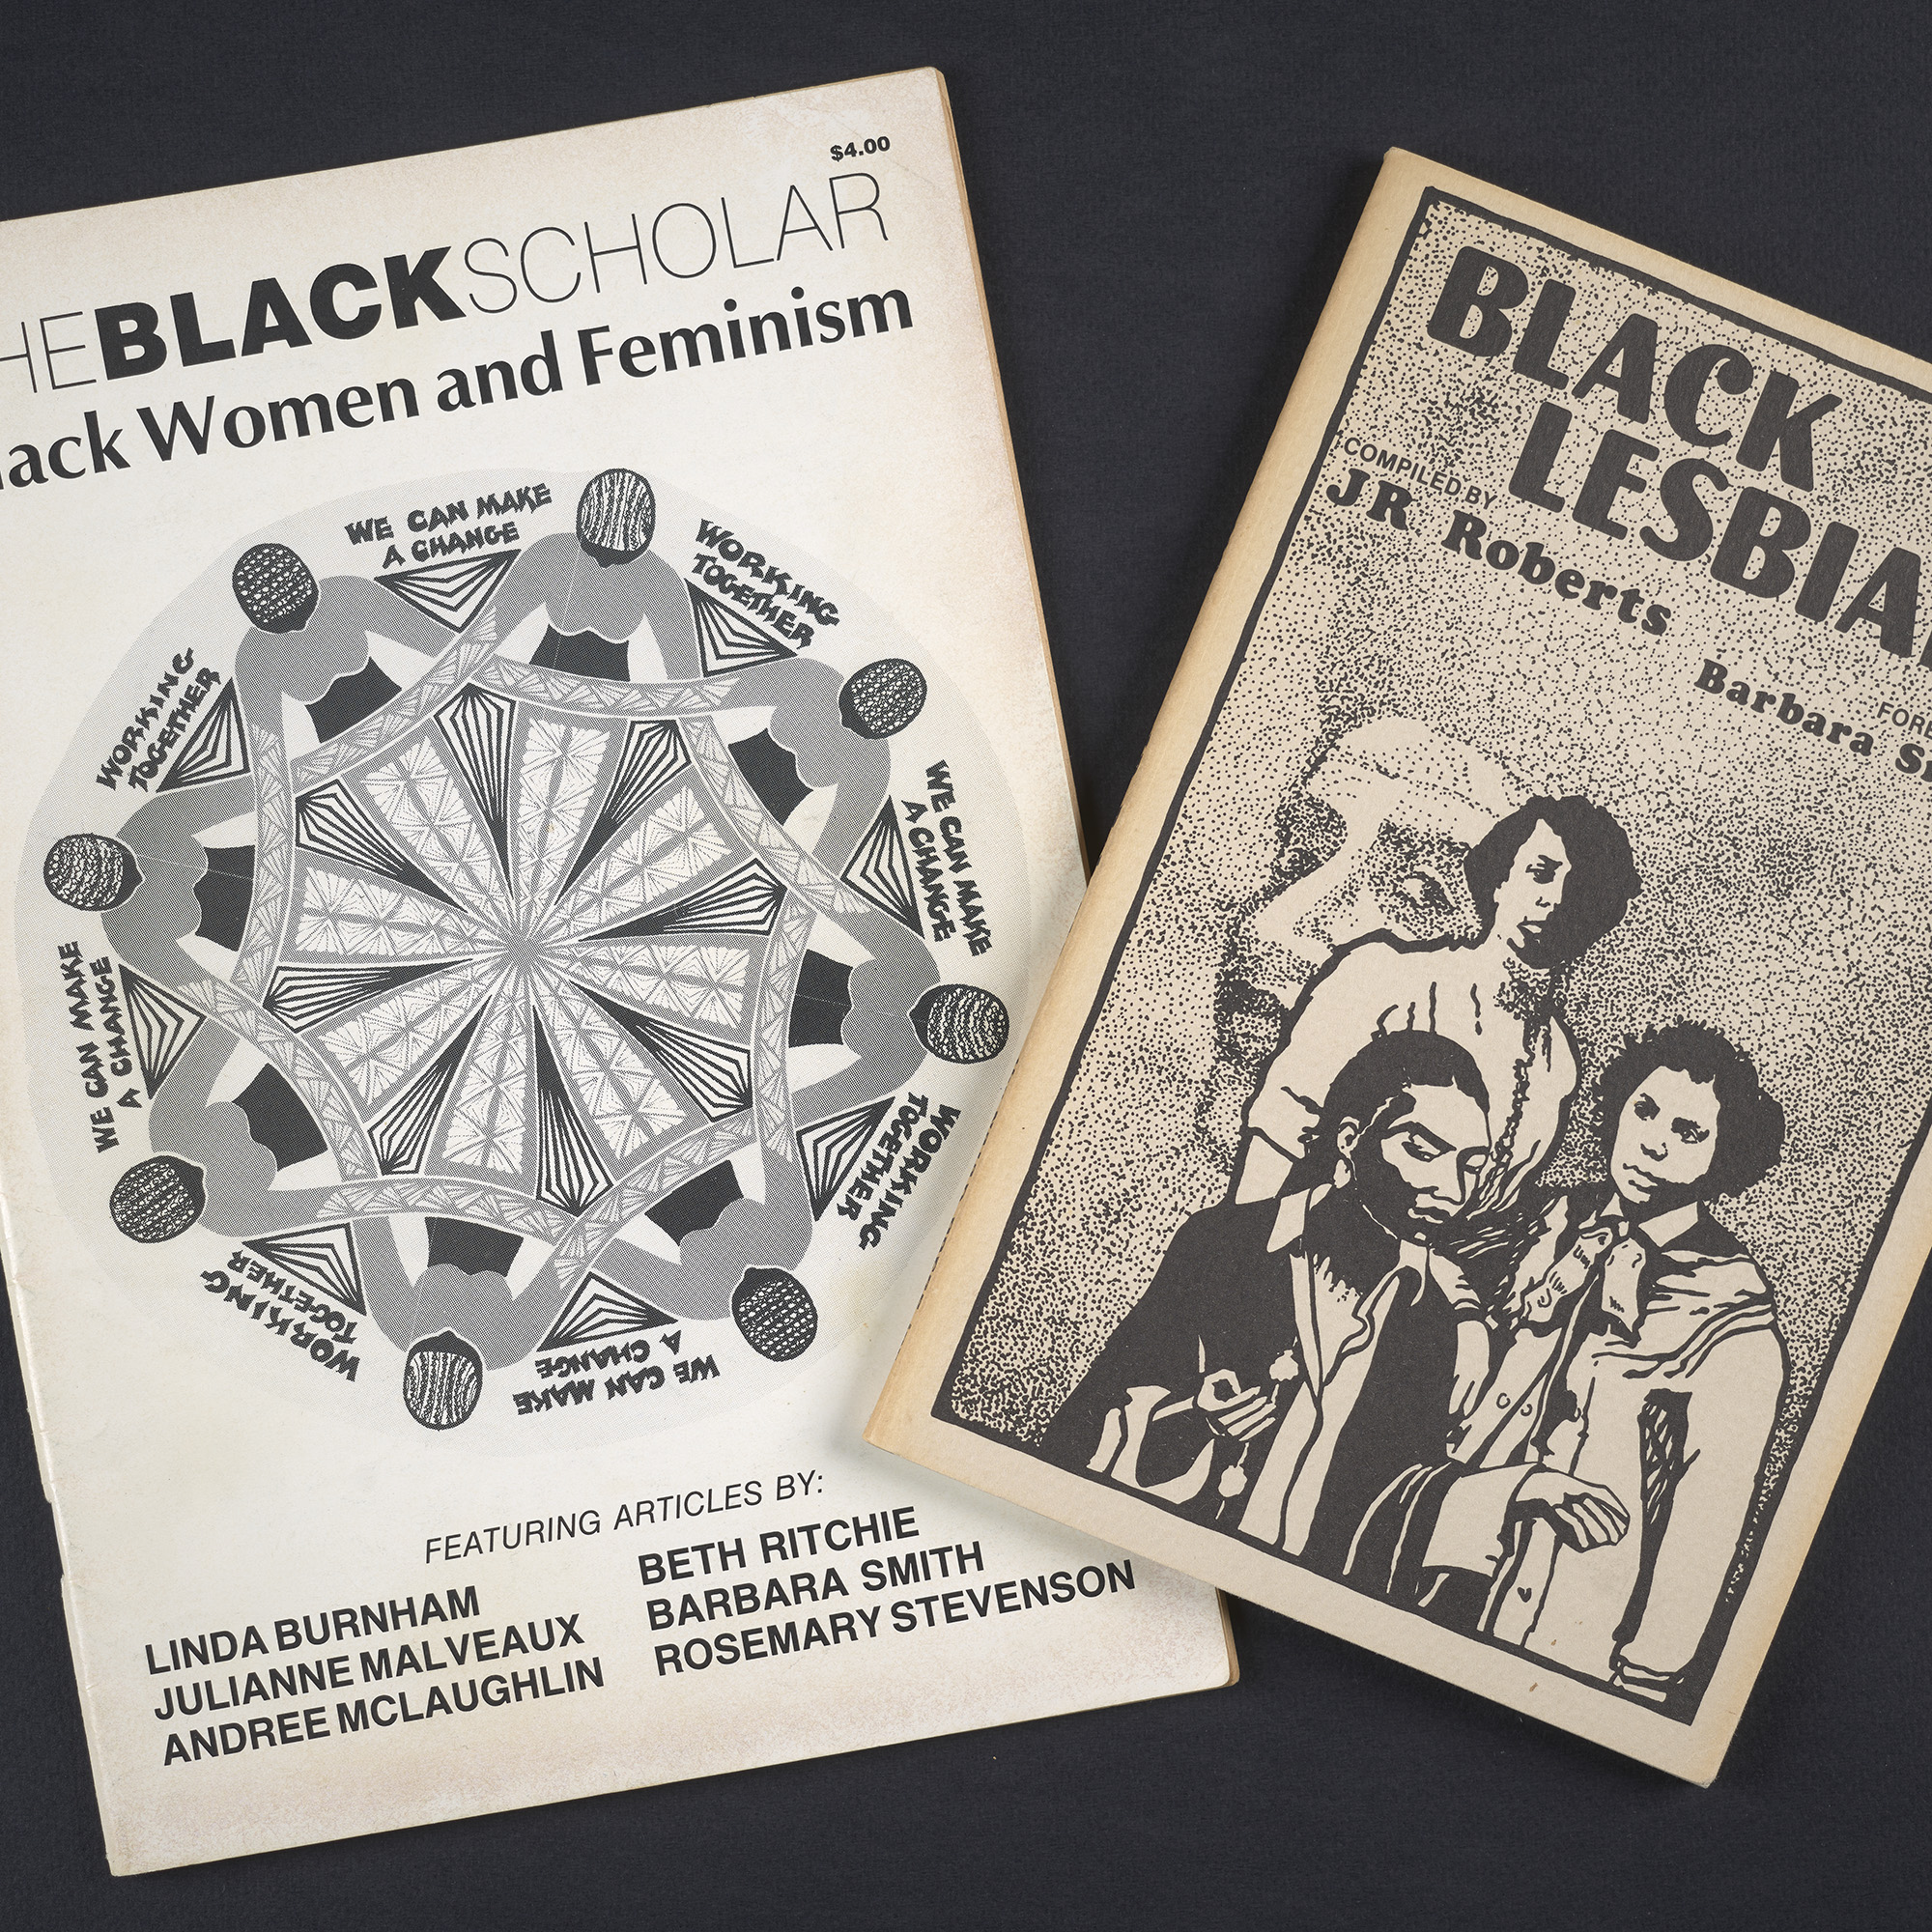 Covers of two journals, The Black Scholar and Black Lesbians, from the Johanna Banks Collection.